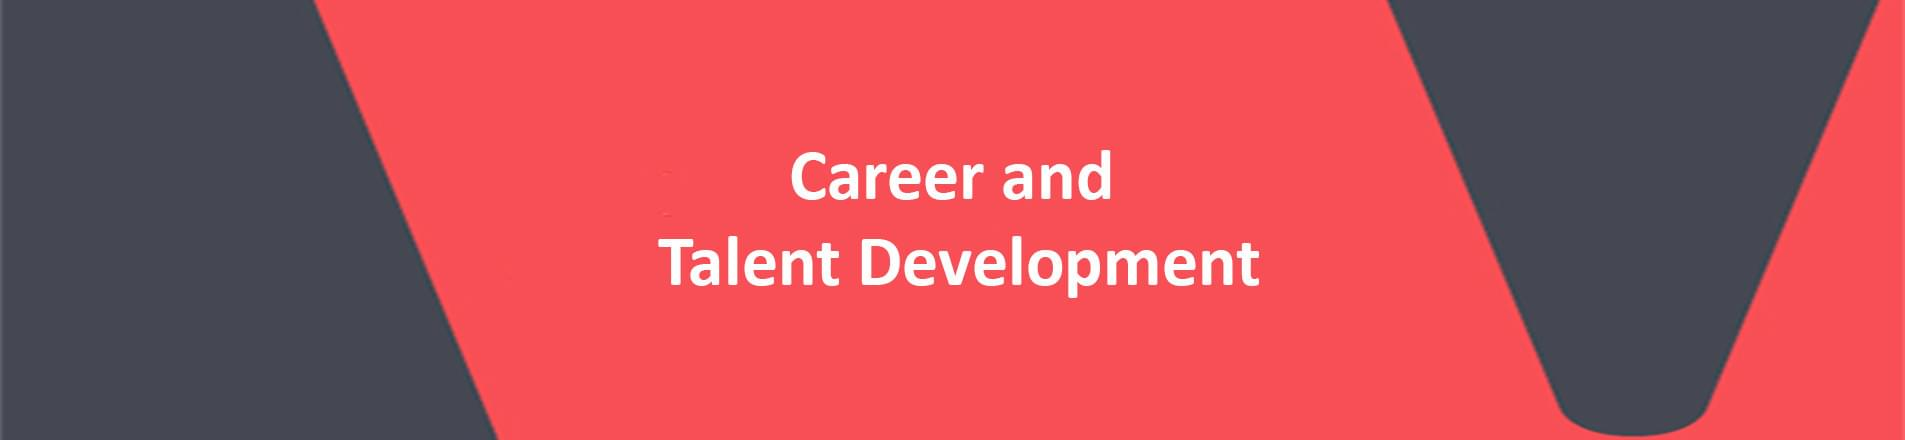 red banner with white text reading  career and talent develoopement